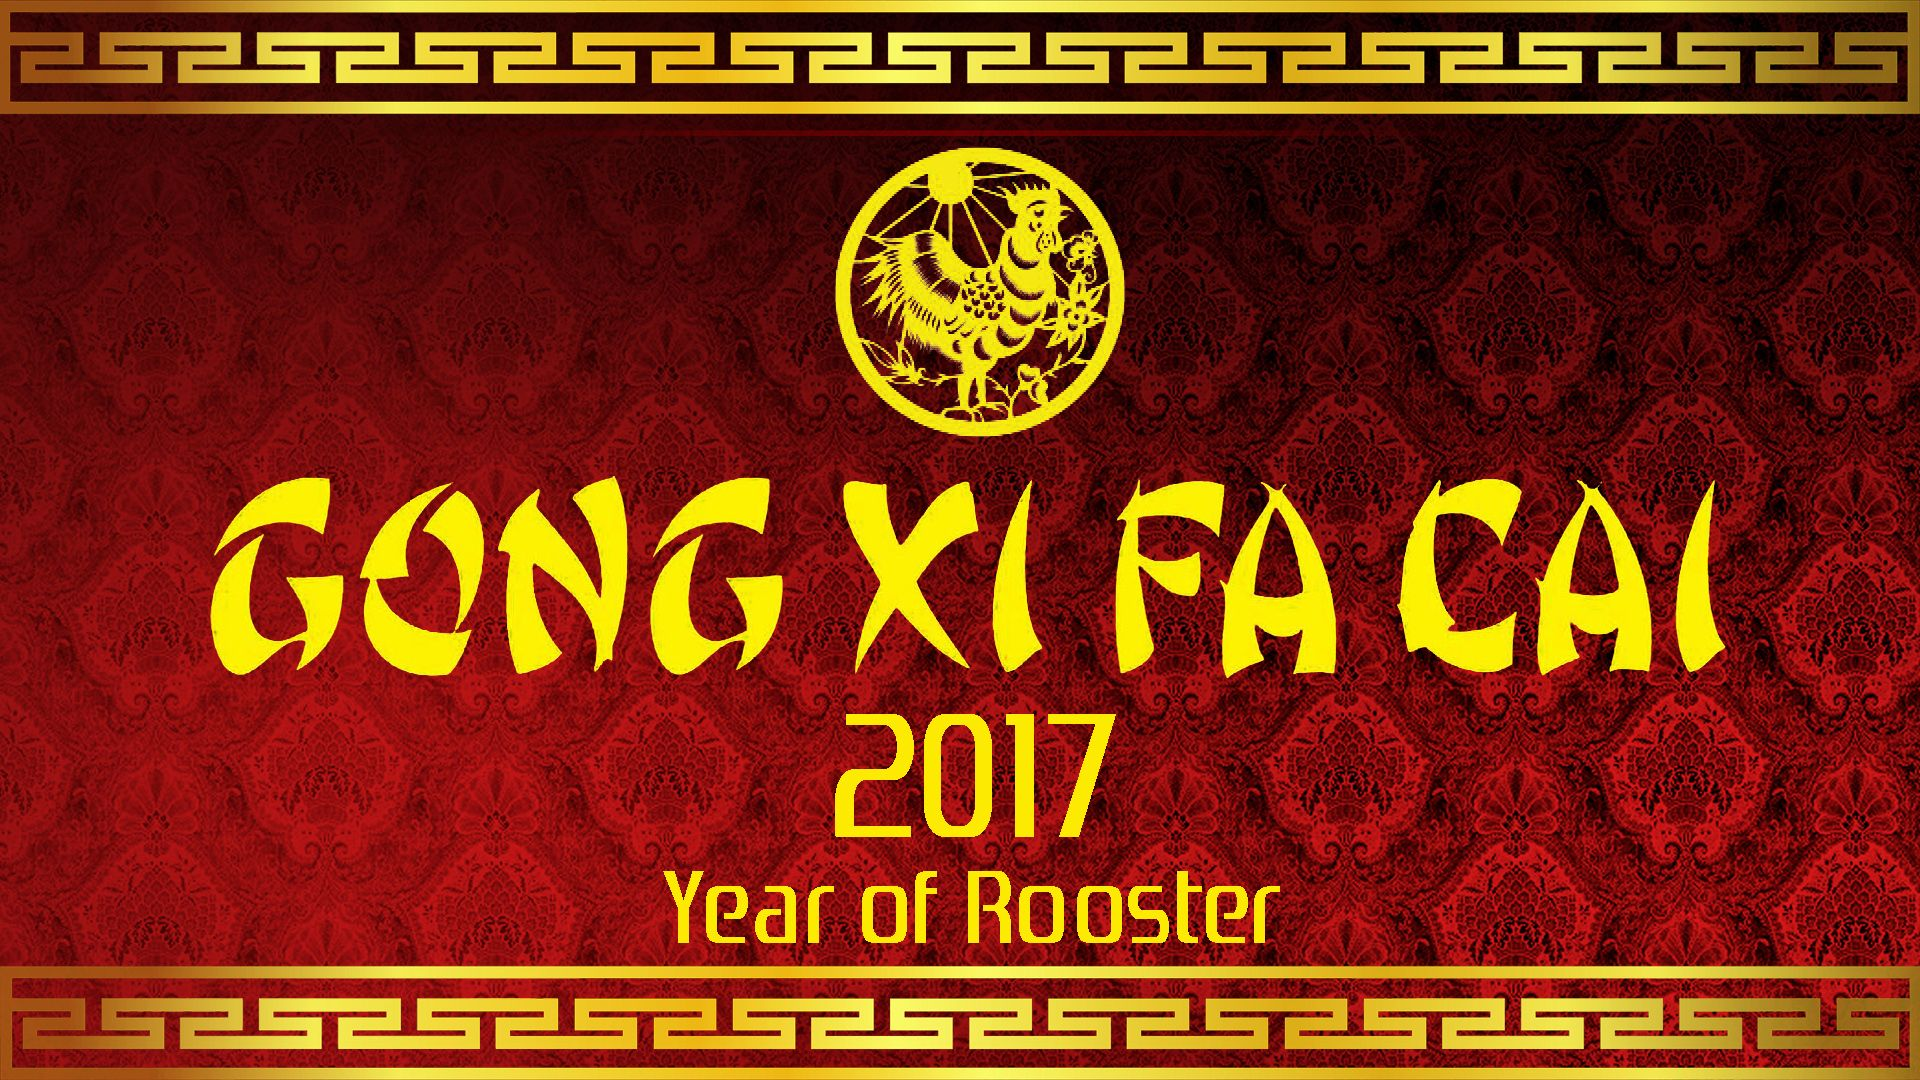 Gong Xi Fa Cai 2017 Happy Chinese New Year Wallpaper Tahun